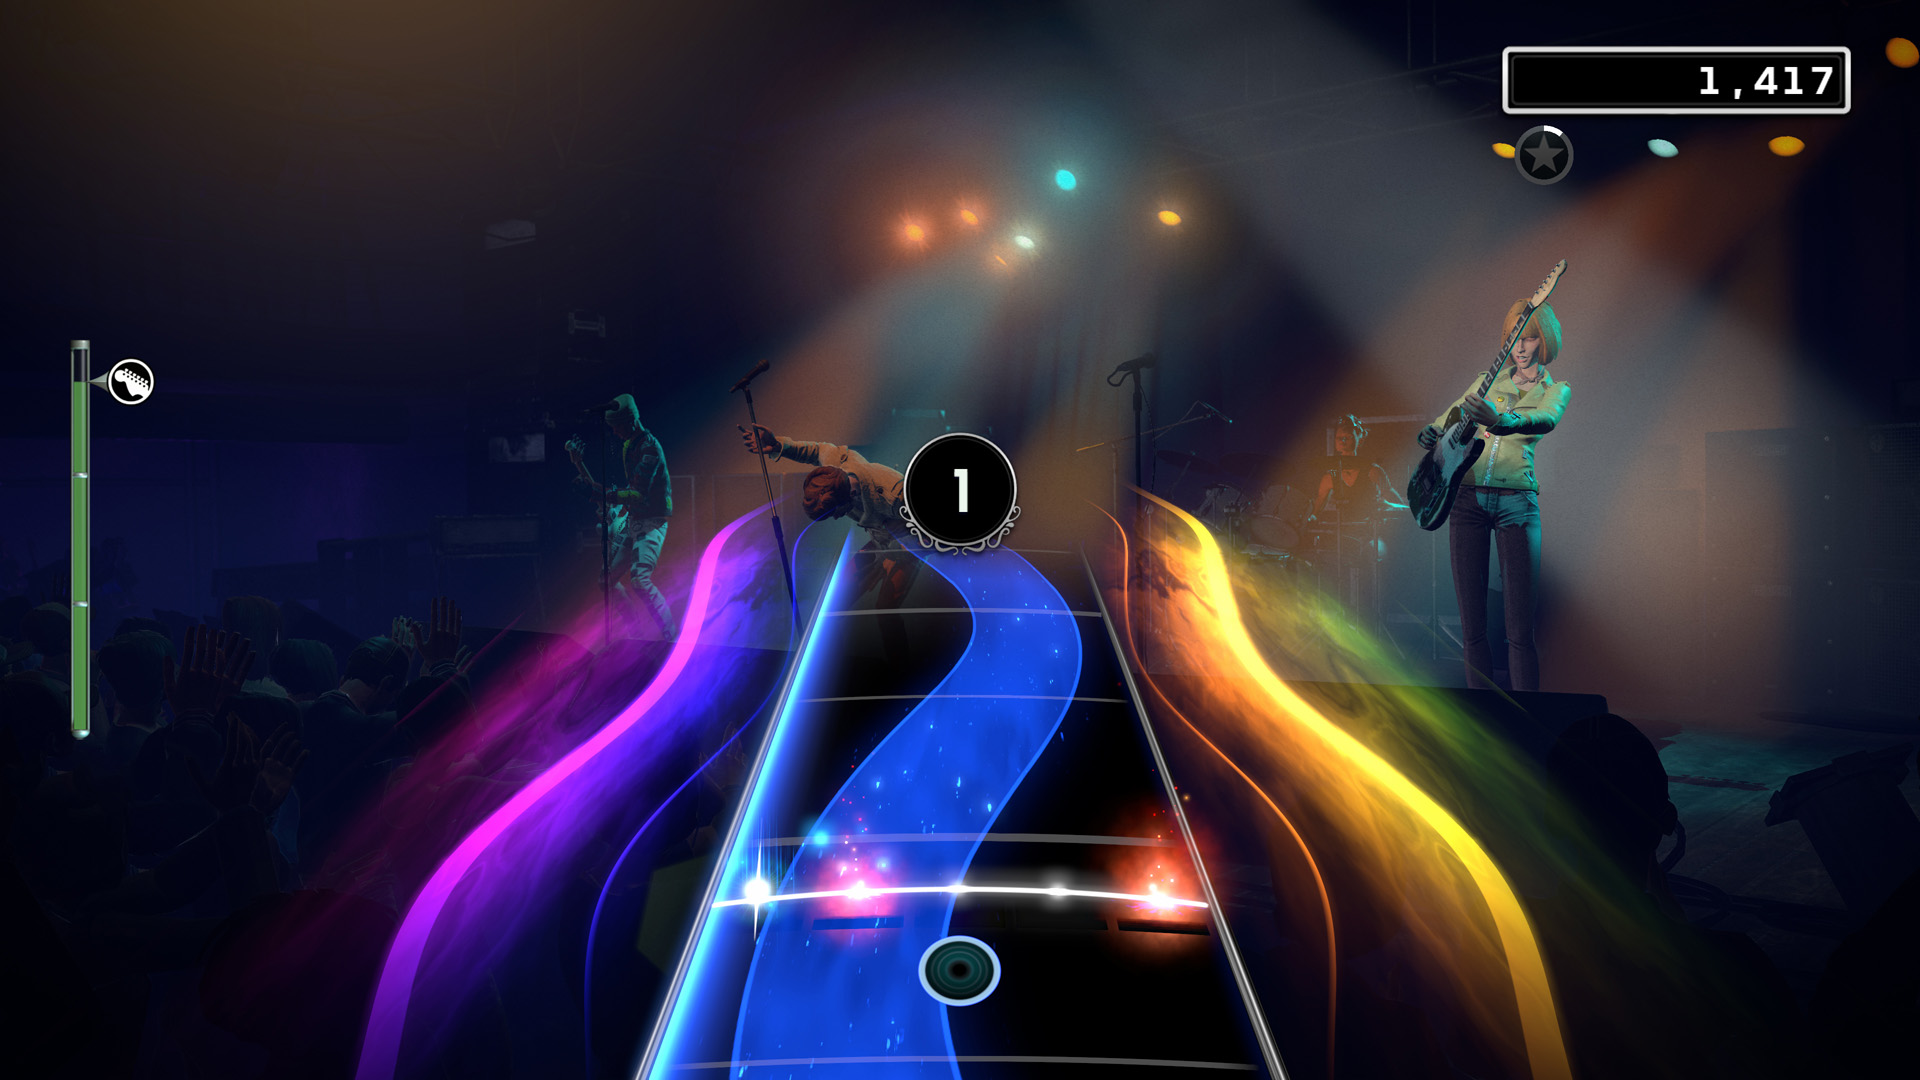 Rock Band 4 Standalone Wireless Fender Stratocaster Guitar Now Available